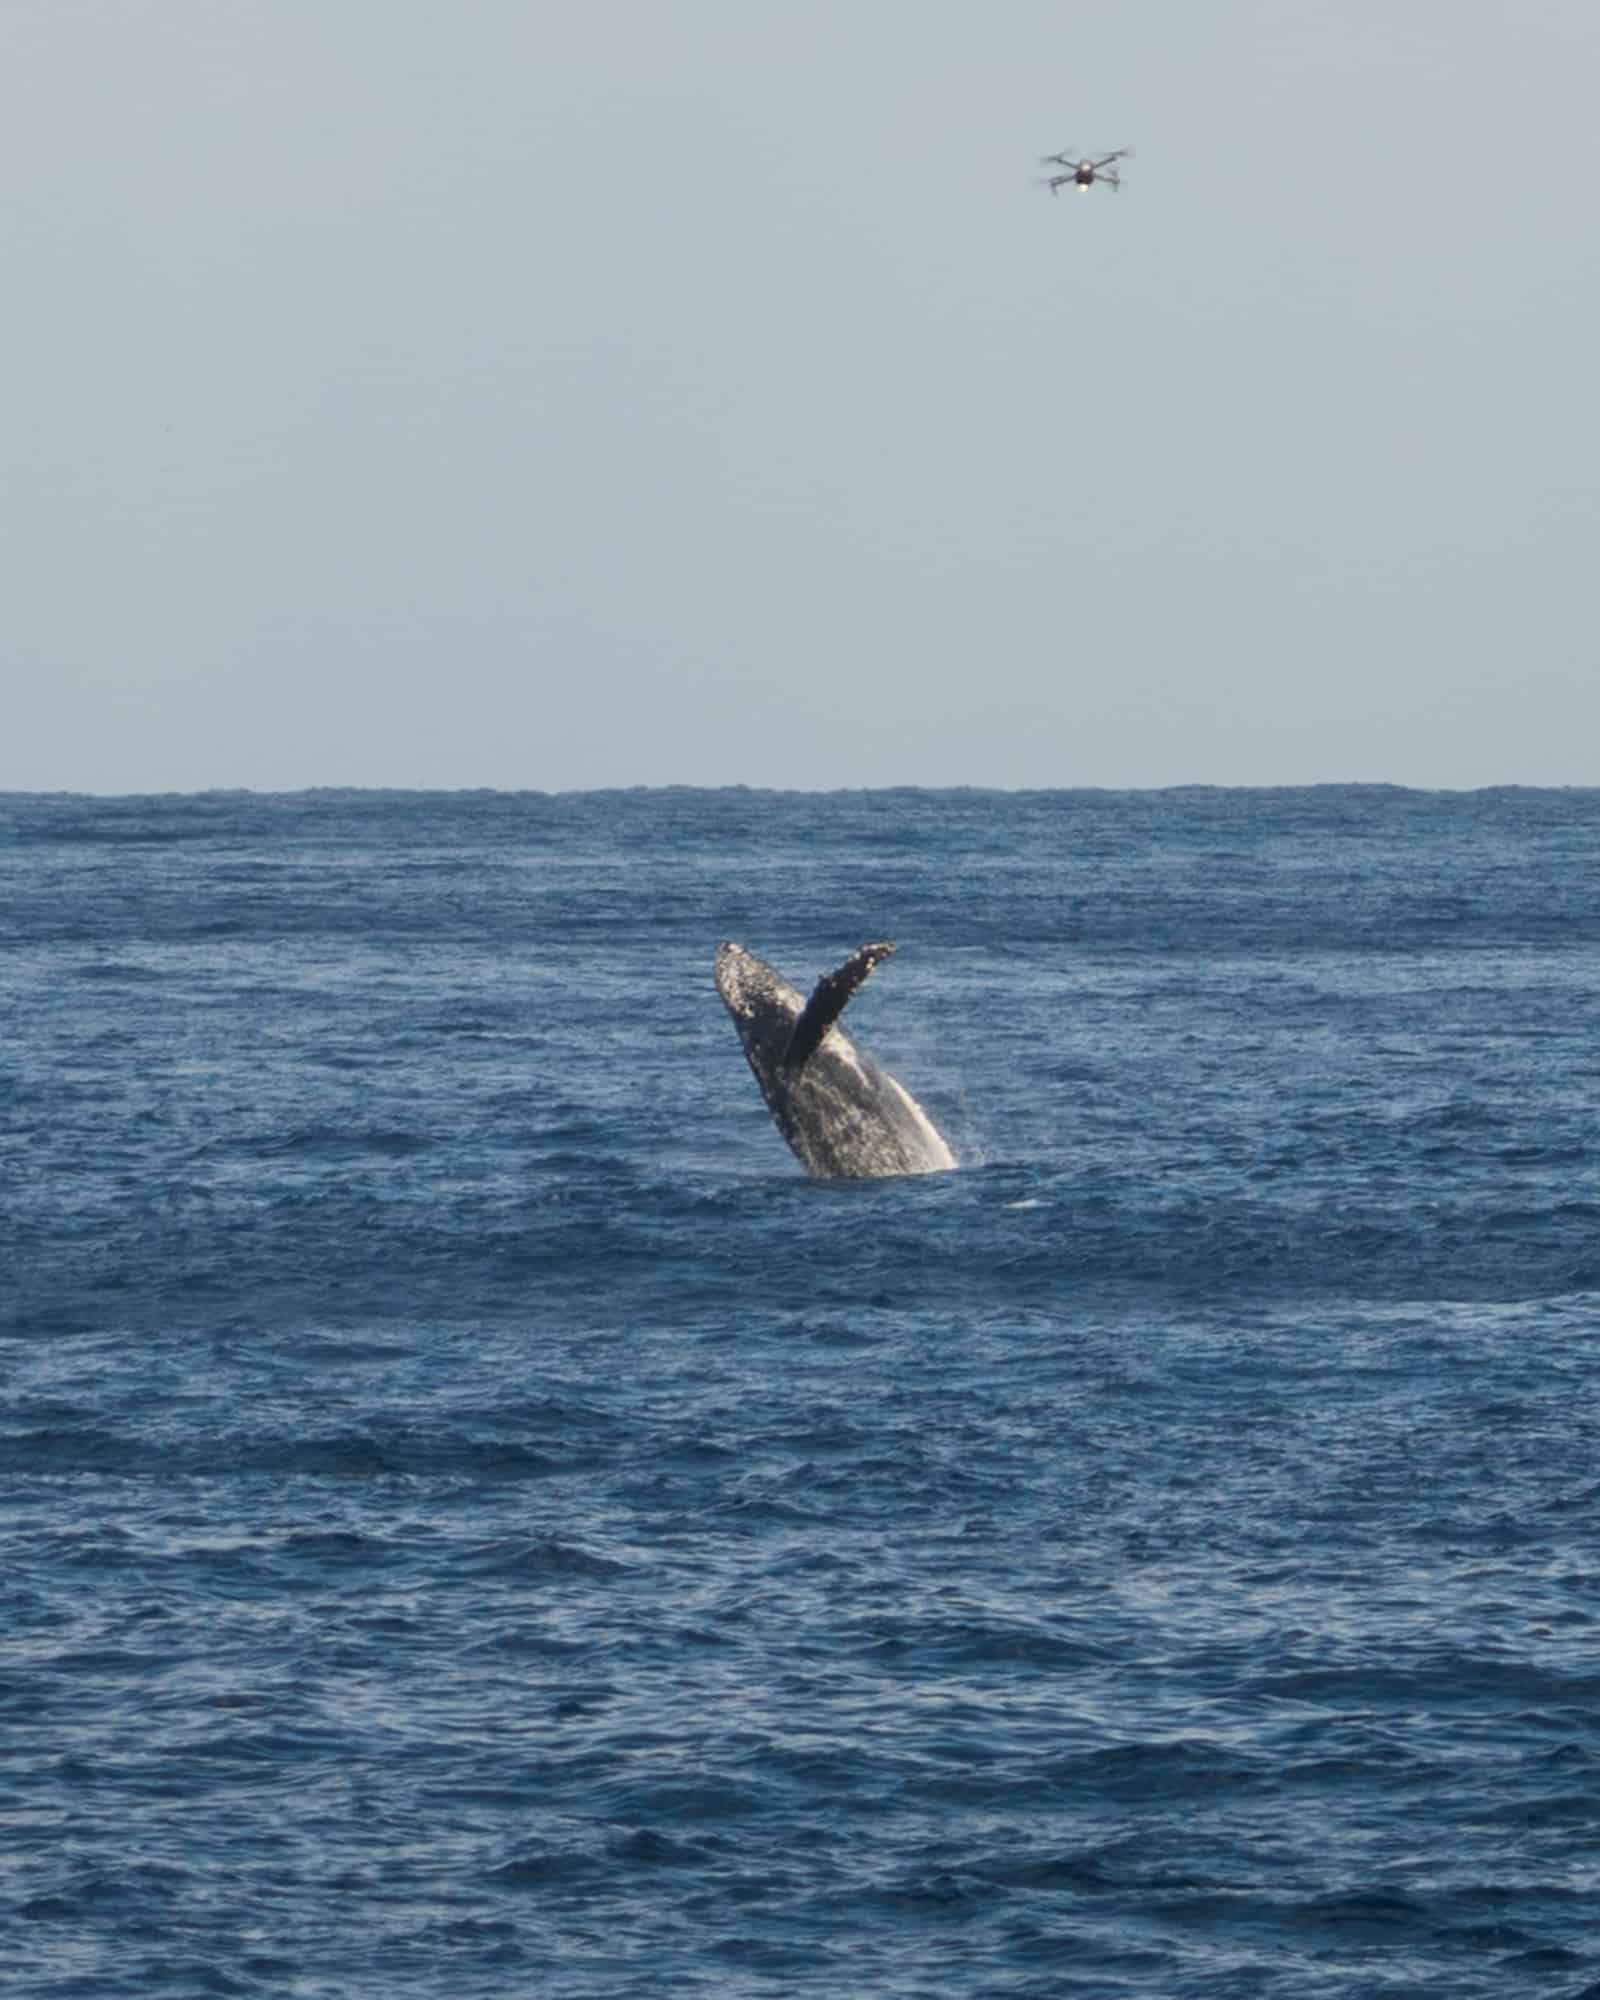 A humpback whale breaches the water on the Big Island.